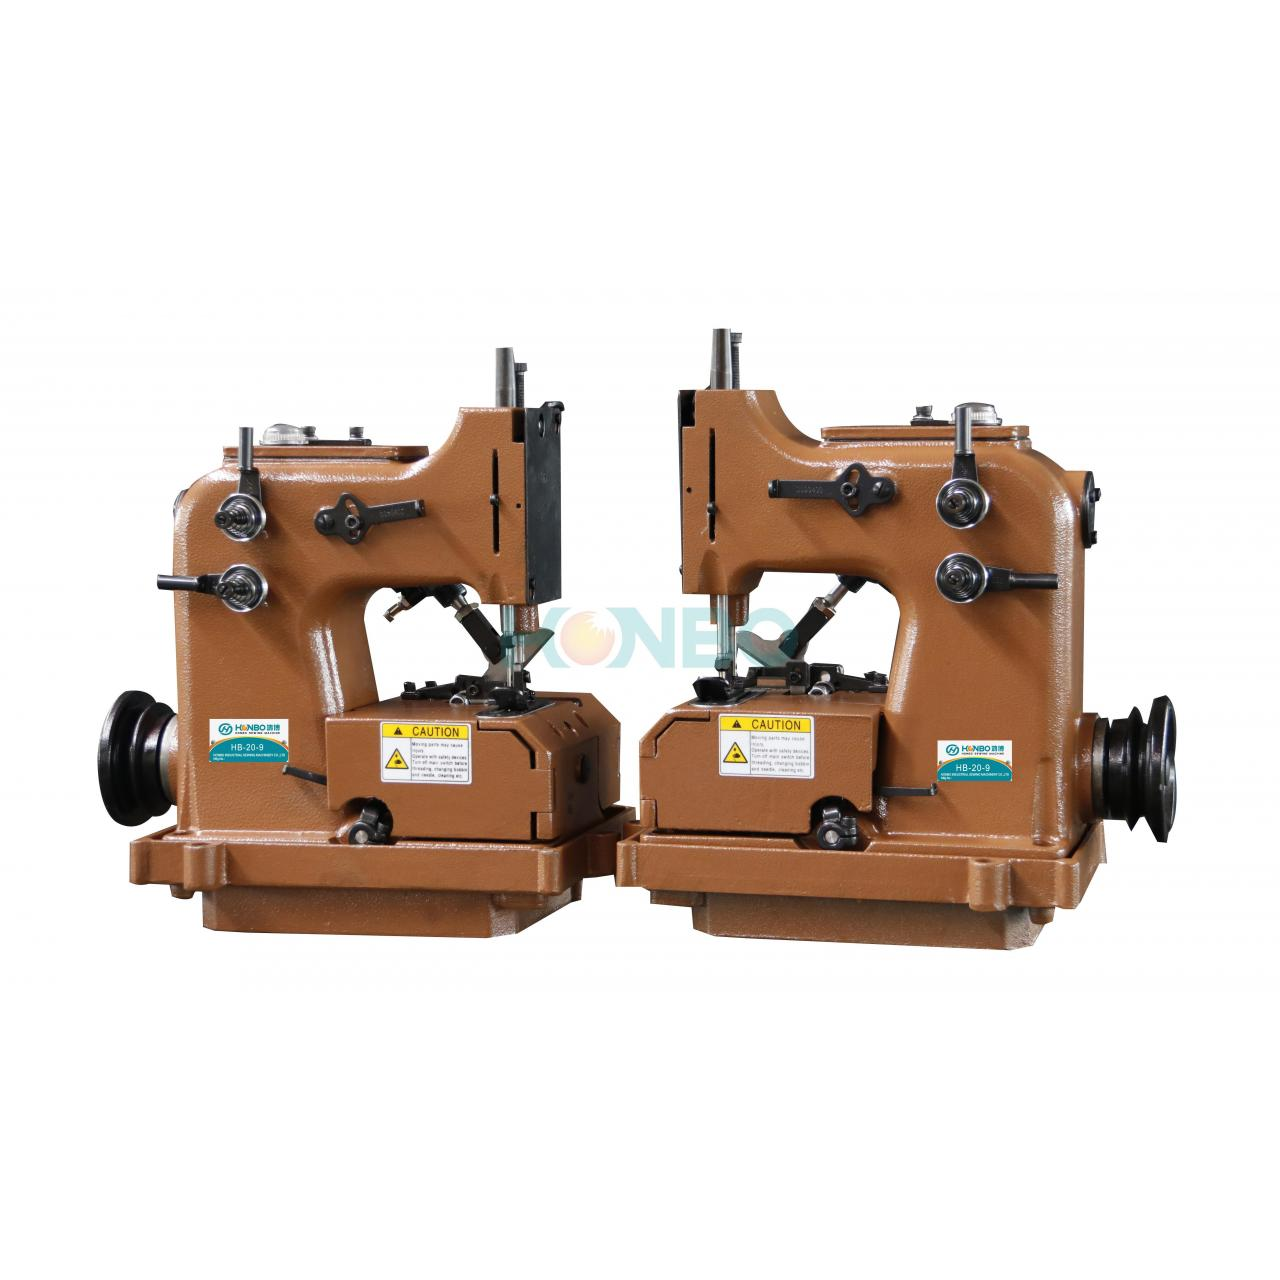 Buy cheap HB-20-9 industrial automat Leather/Shoe/Bag Making machine series from wholesalers